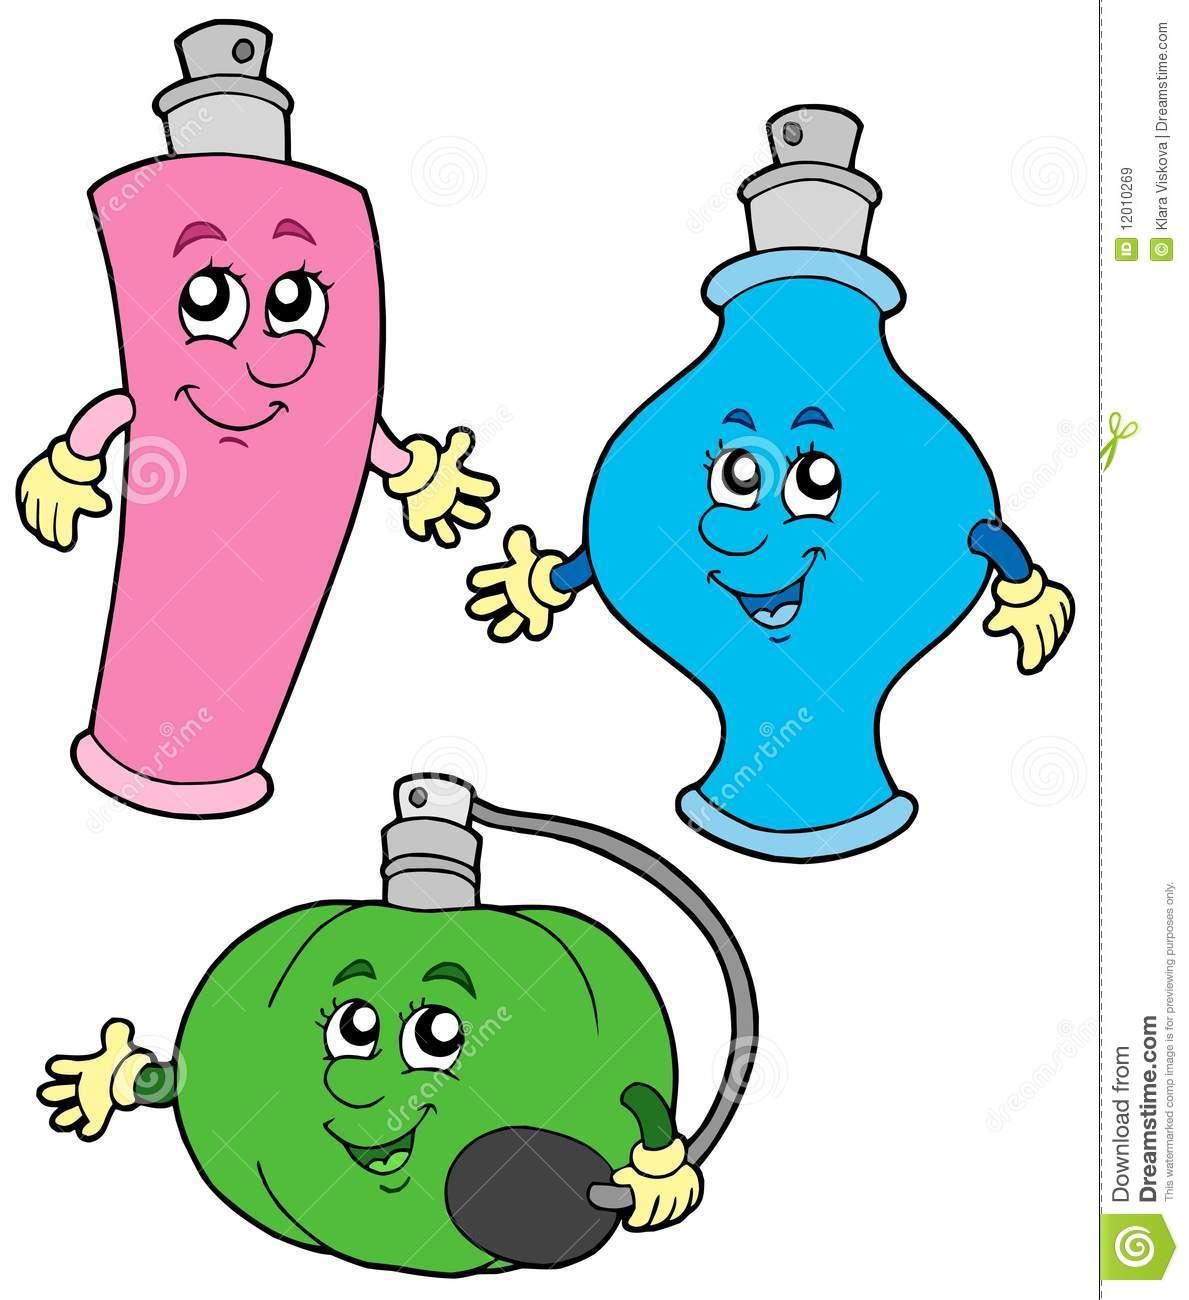 Cartoon Perfumes Collection Royalty Free Stock Images - Image ...